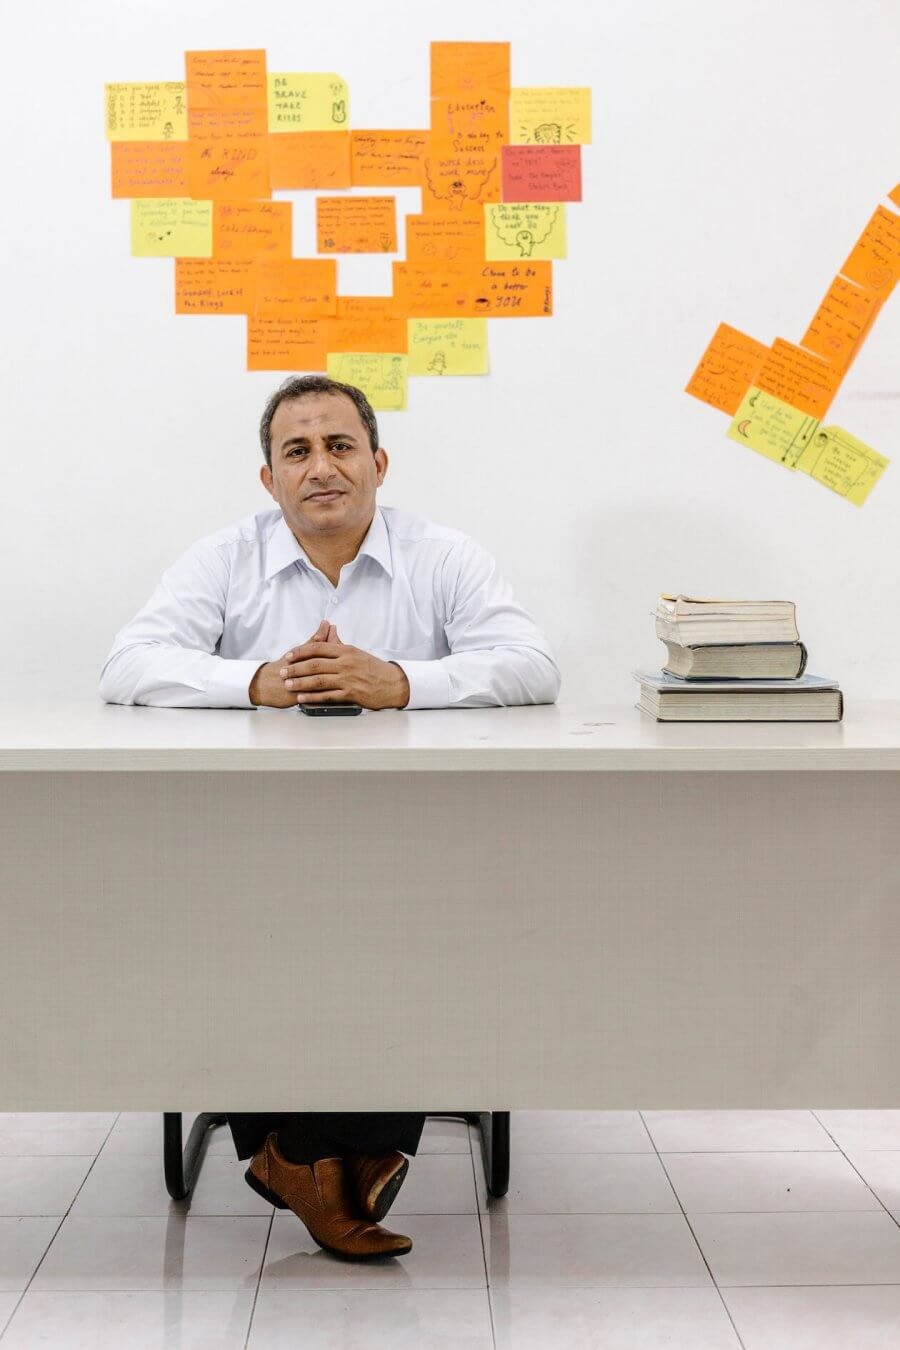 Mohamad Al-Radhi, sitting at desk with wall of sticky notes behind